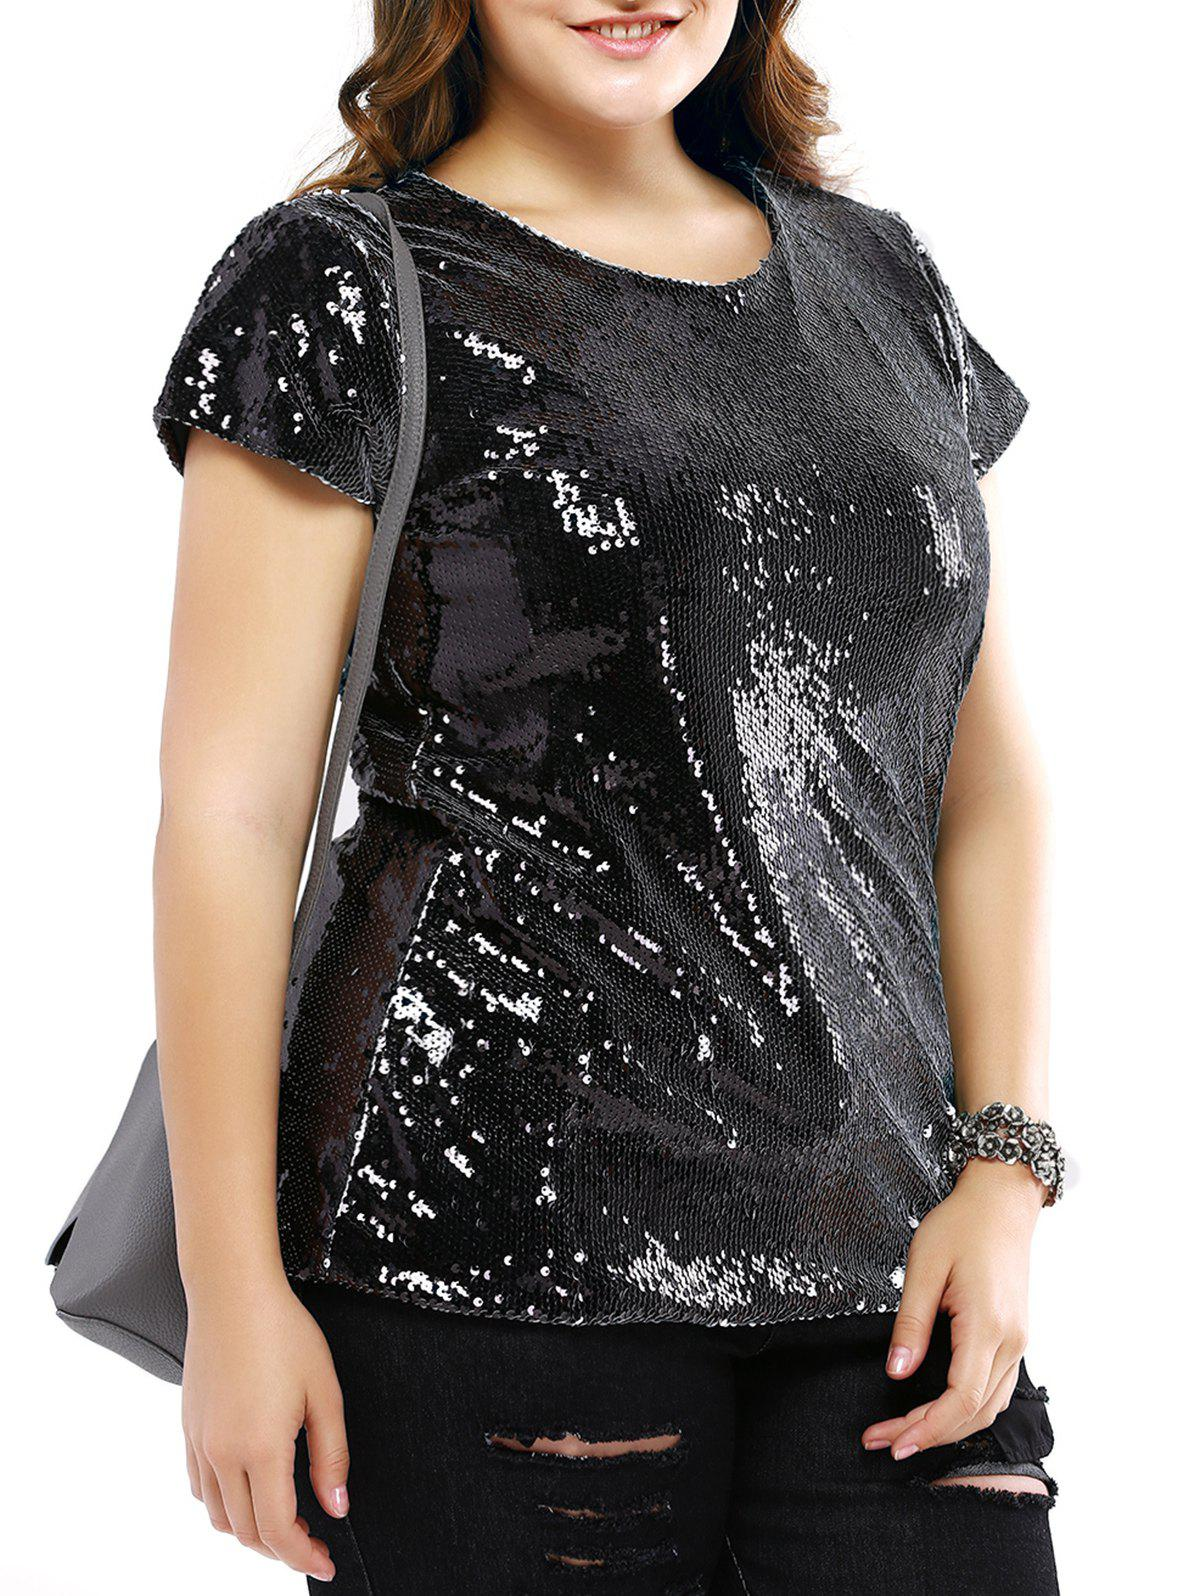 Plus Size Trendy Sequined Black T-Shirt